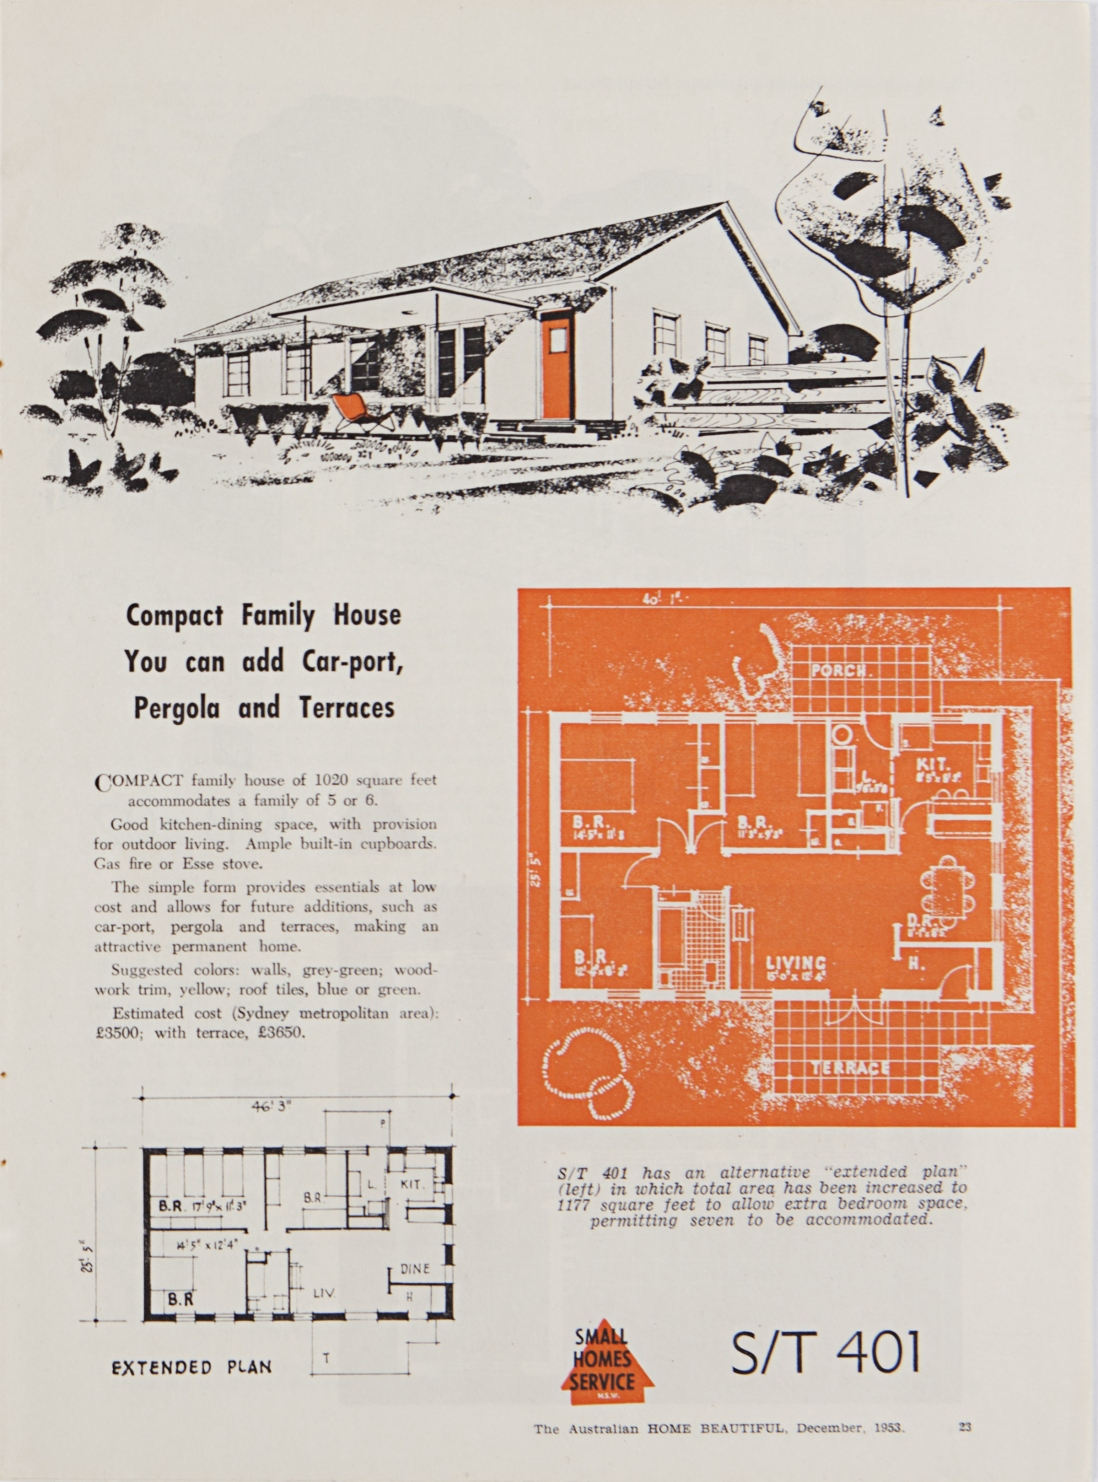 House plan on orange background with description and illustration.